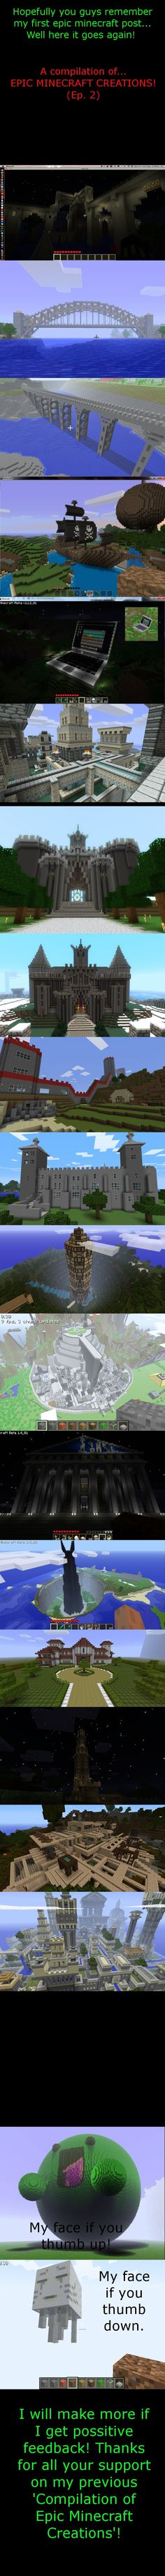 http://img3.5minecraft.net/Mods/A%20Comp%20of%20Epic%20Minecraft%20Creations.jpg